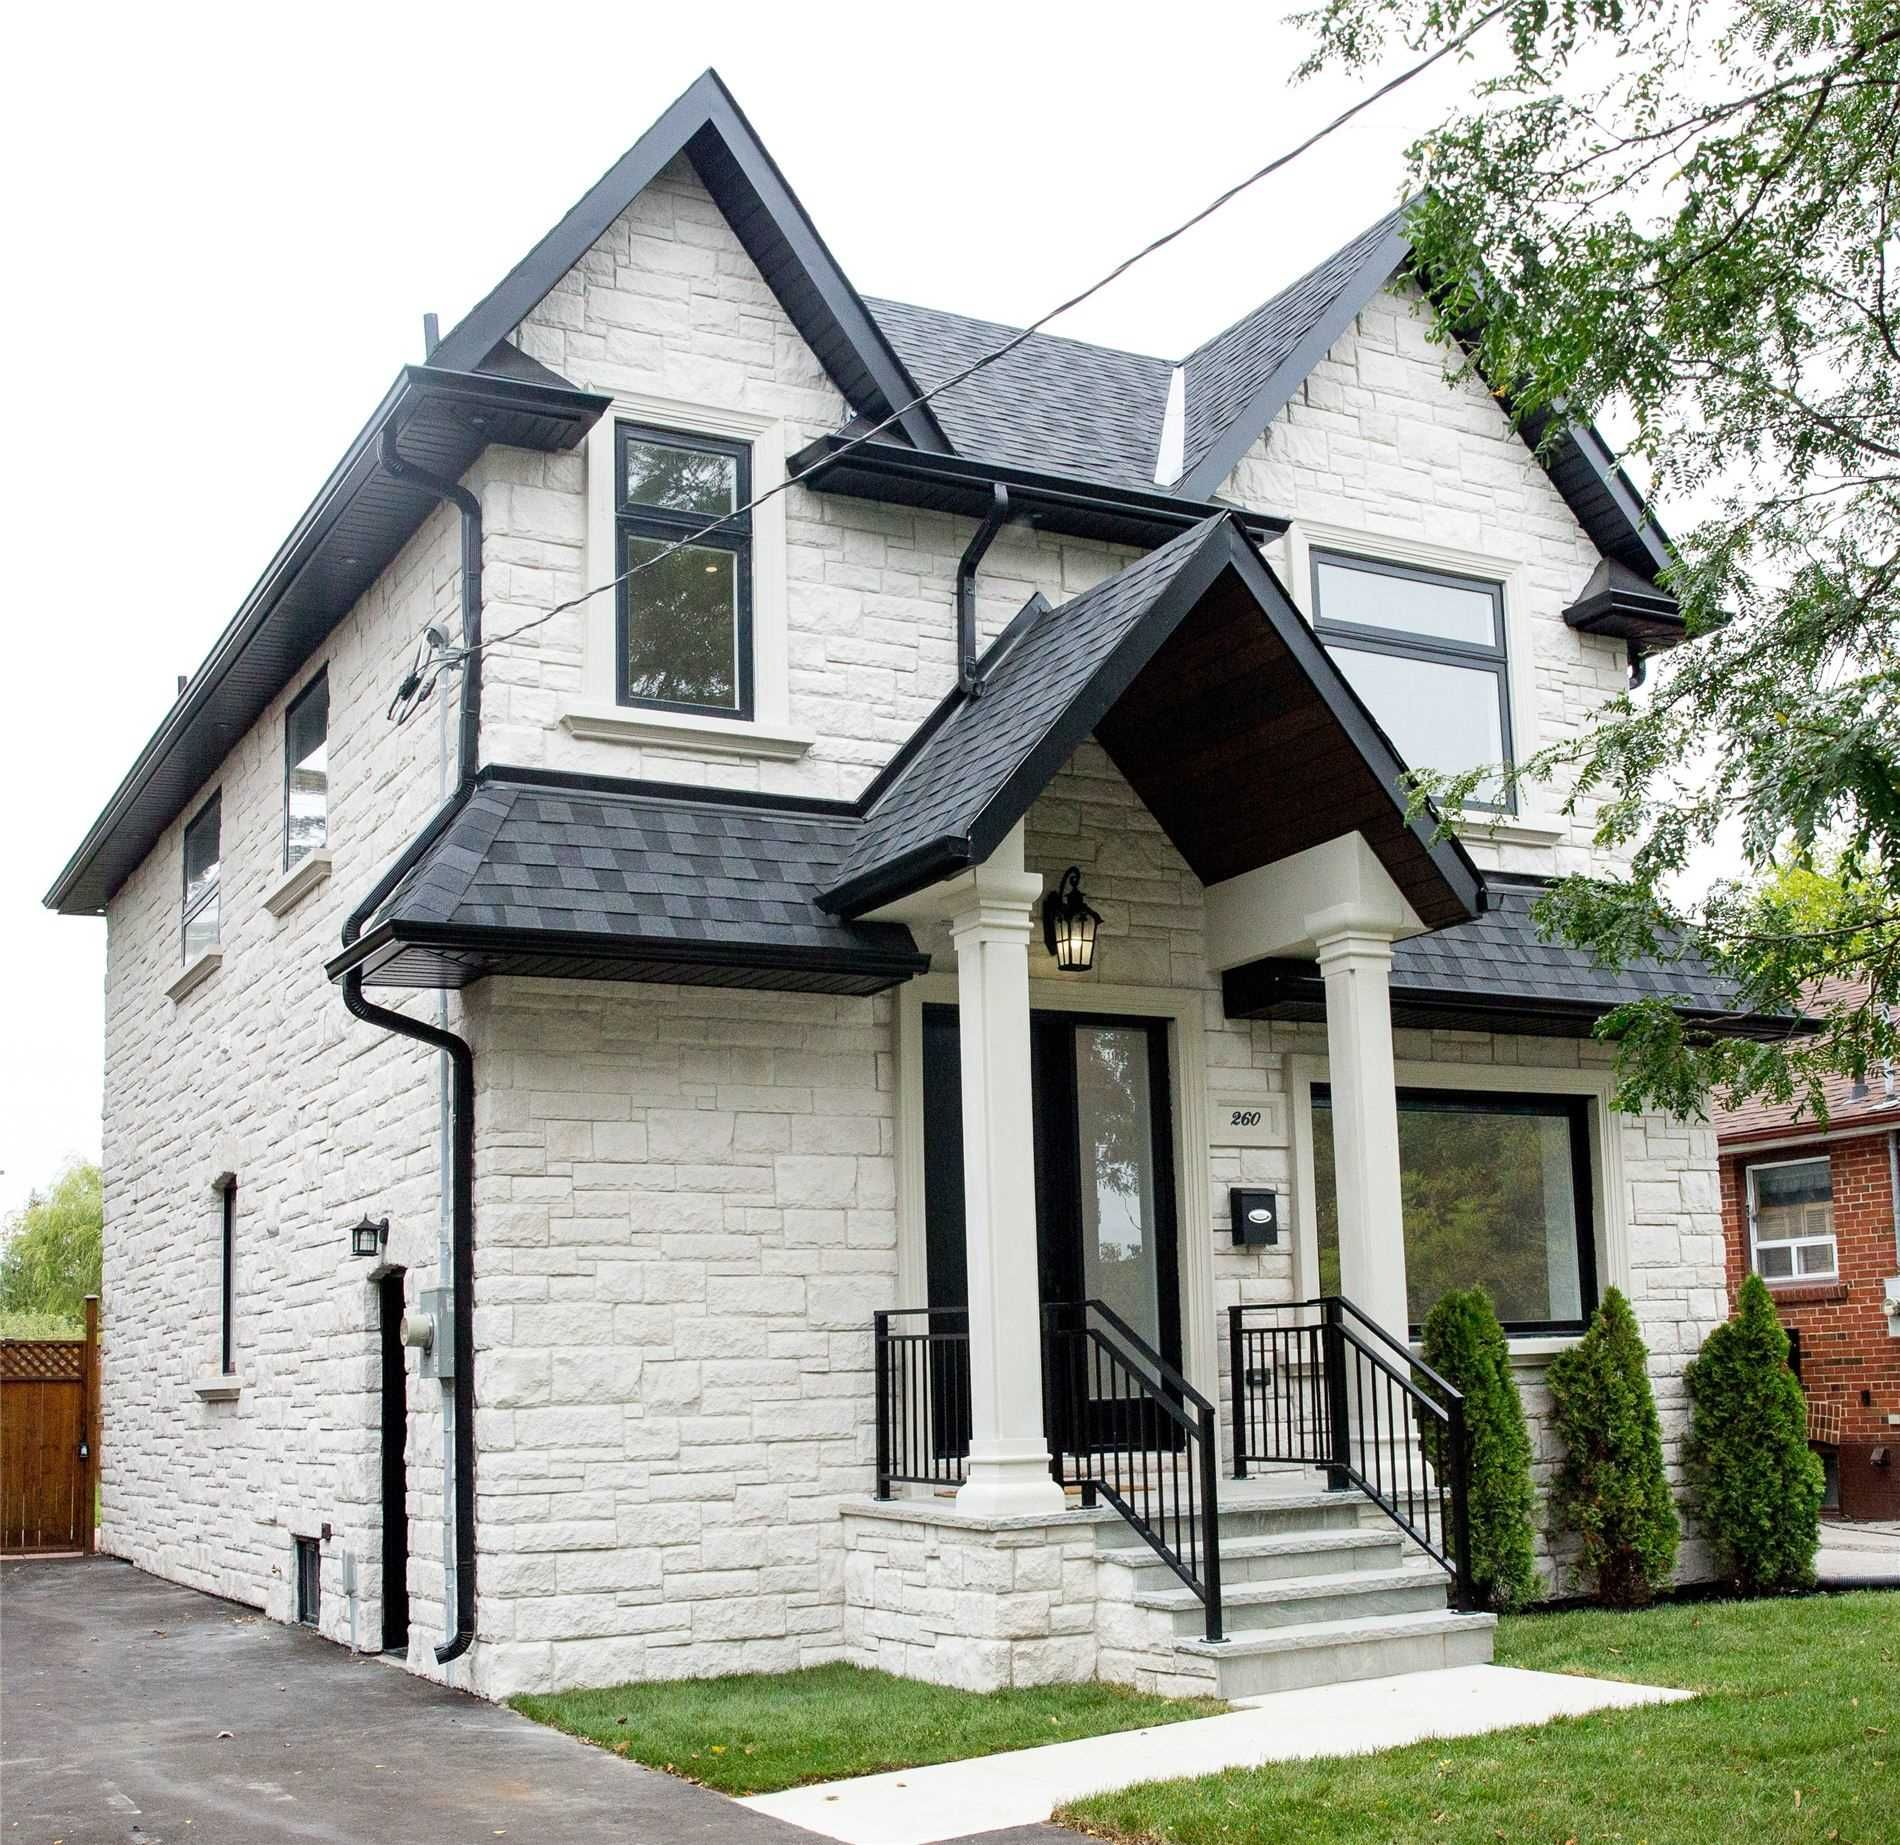 home for sale at 260 Lanor Avenue